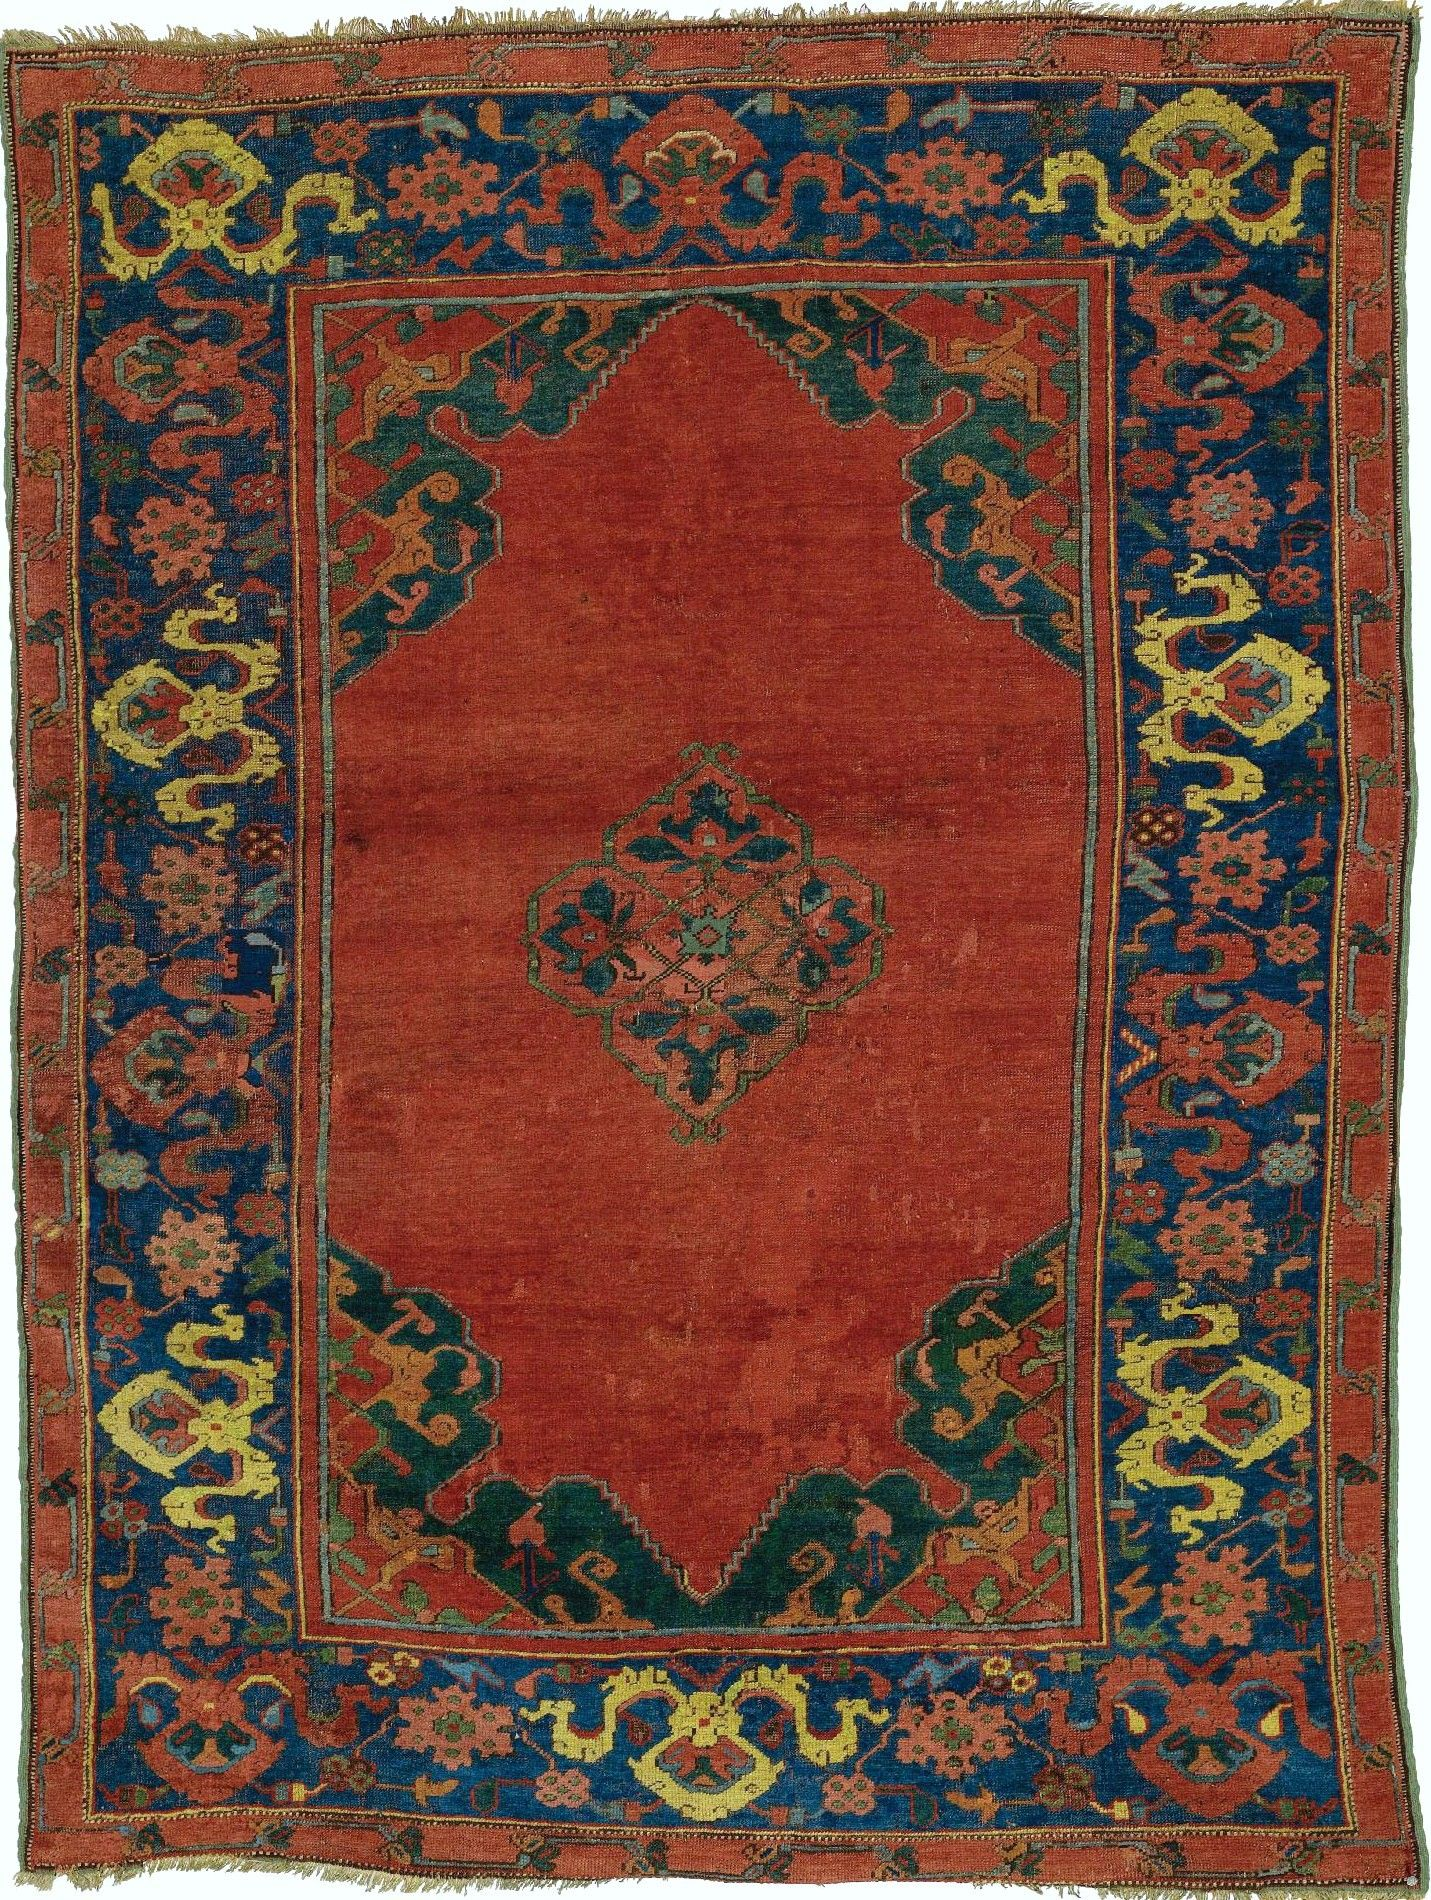 Turkish Oushak Rug 153 By 113cm Late 16th Century Old Turkish